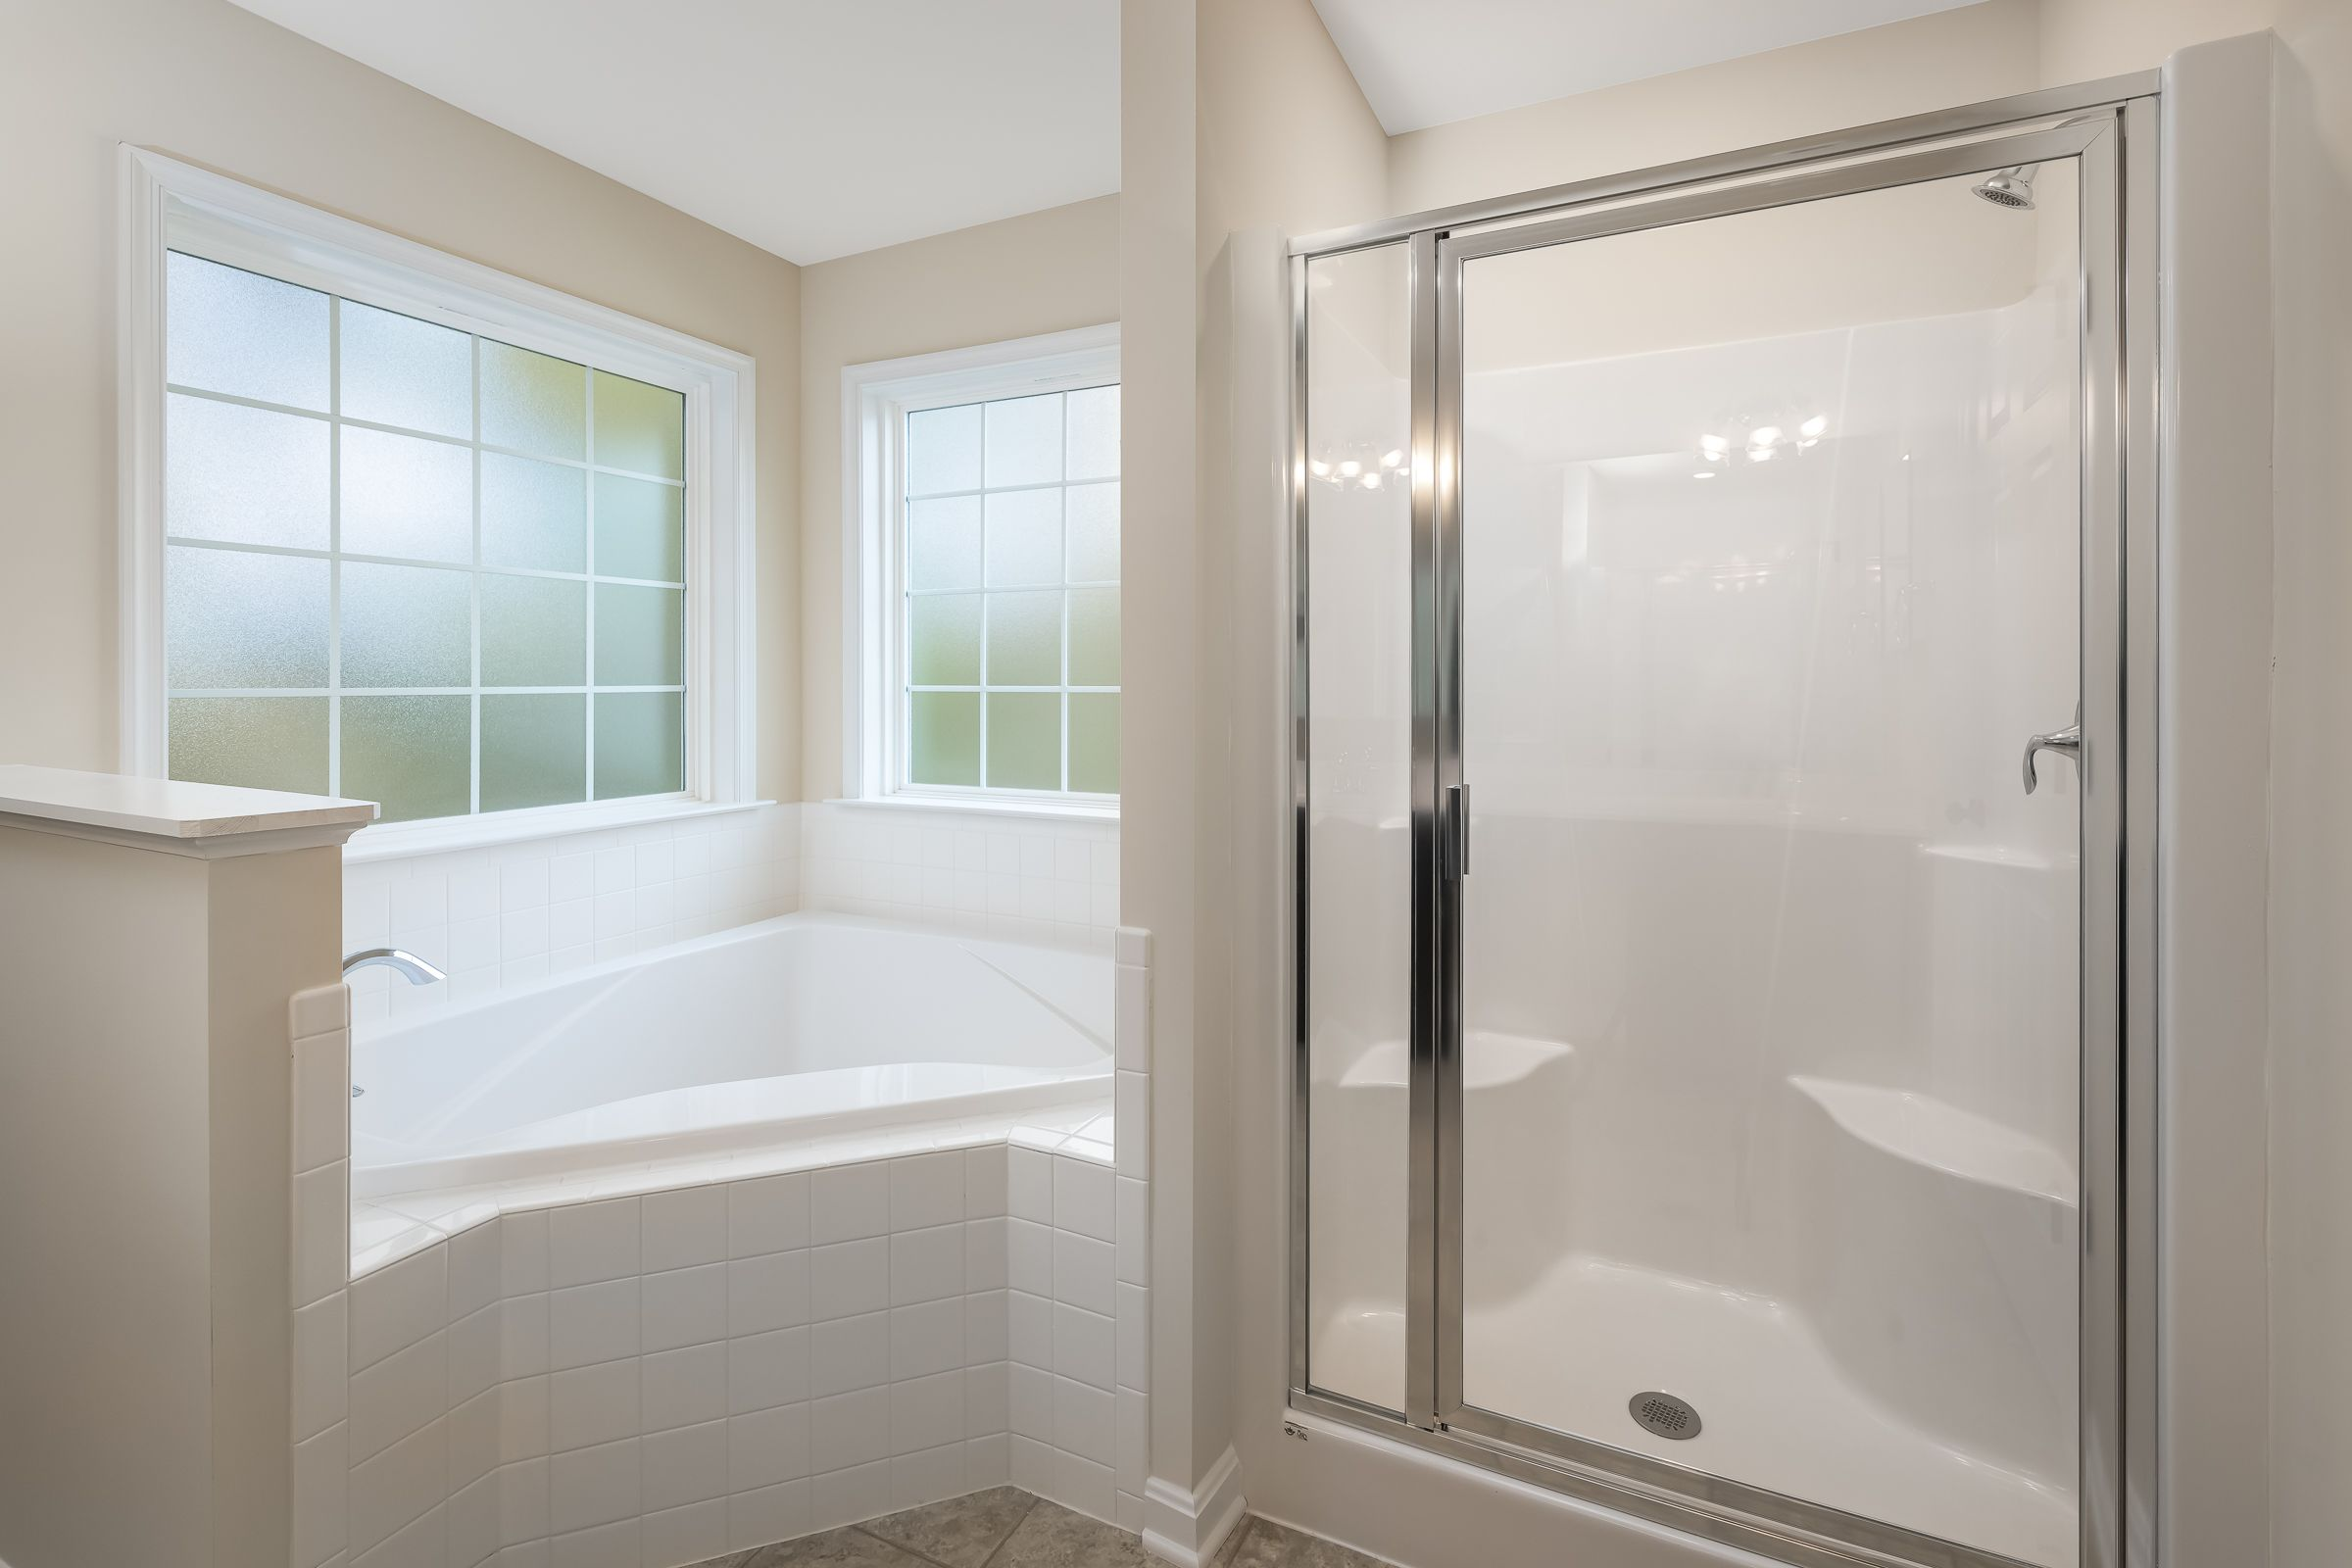 Bathroom featured in The Ashbury By Tricord Homes in Washington, VA